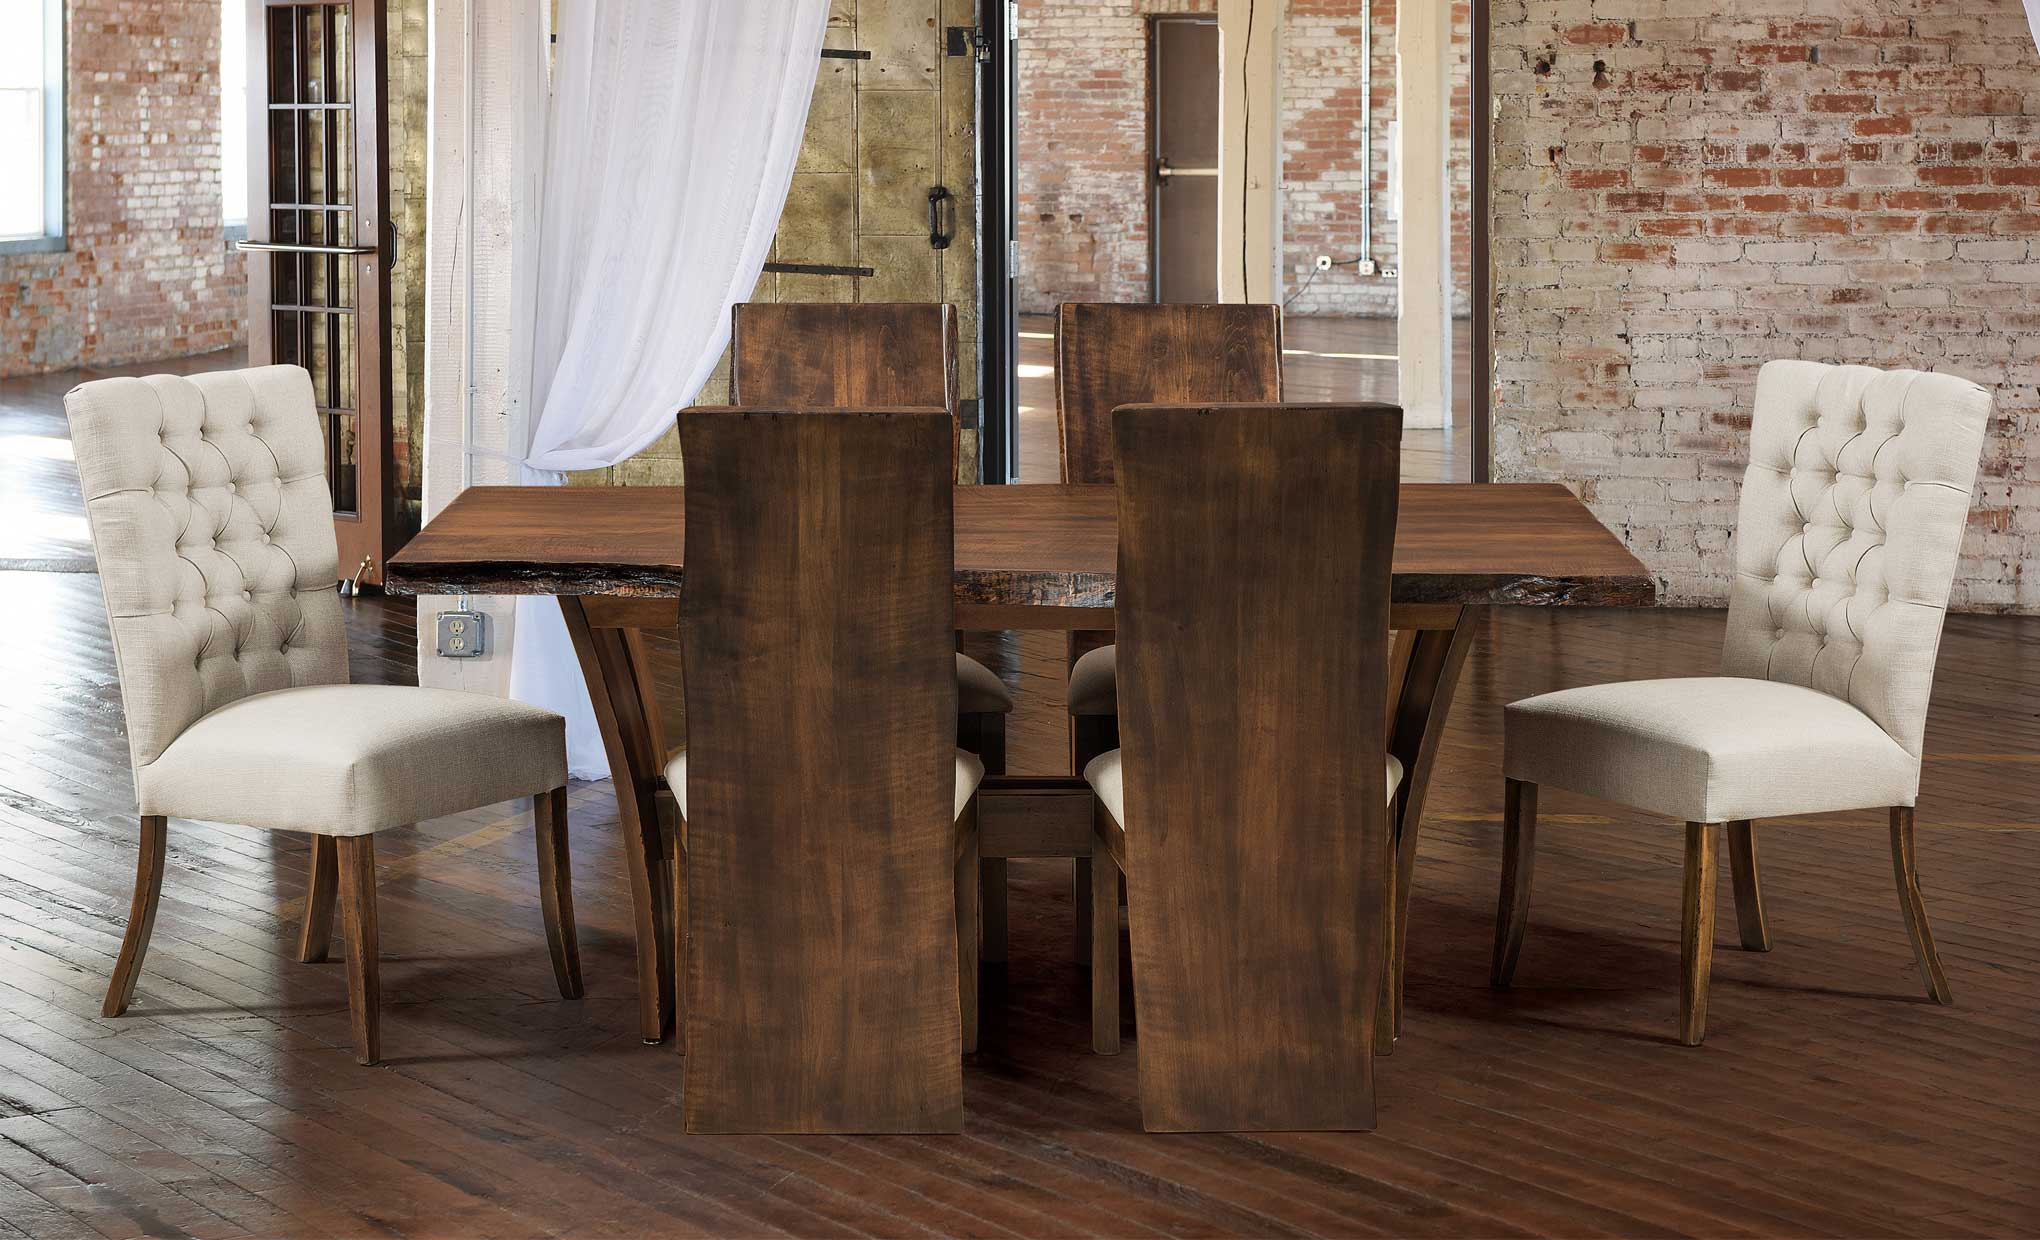 Alana Chairs, Evergreen Chairs, And Delphi Live Edge Table [Room Shot 2]